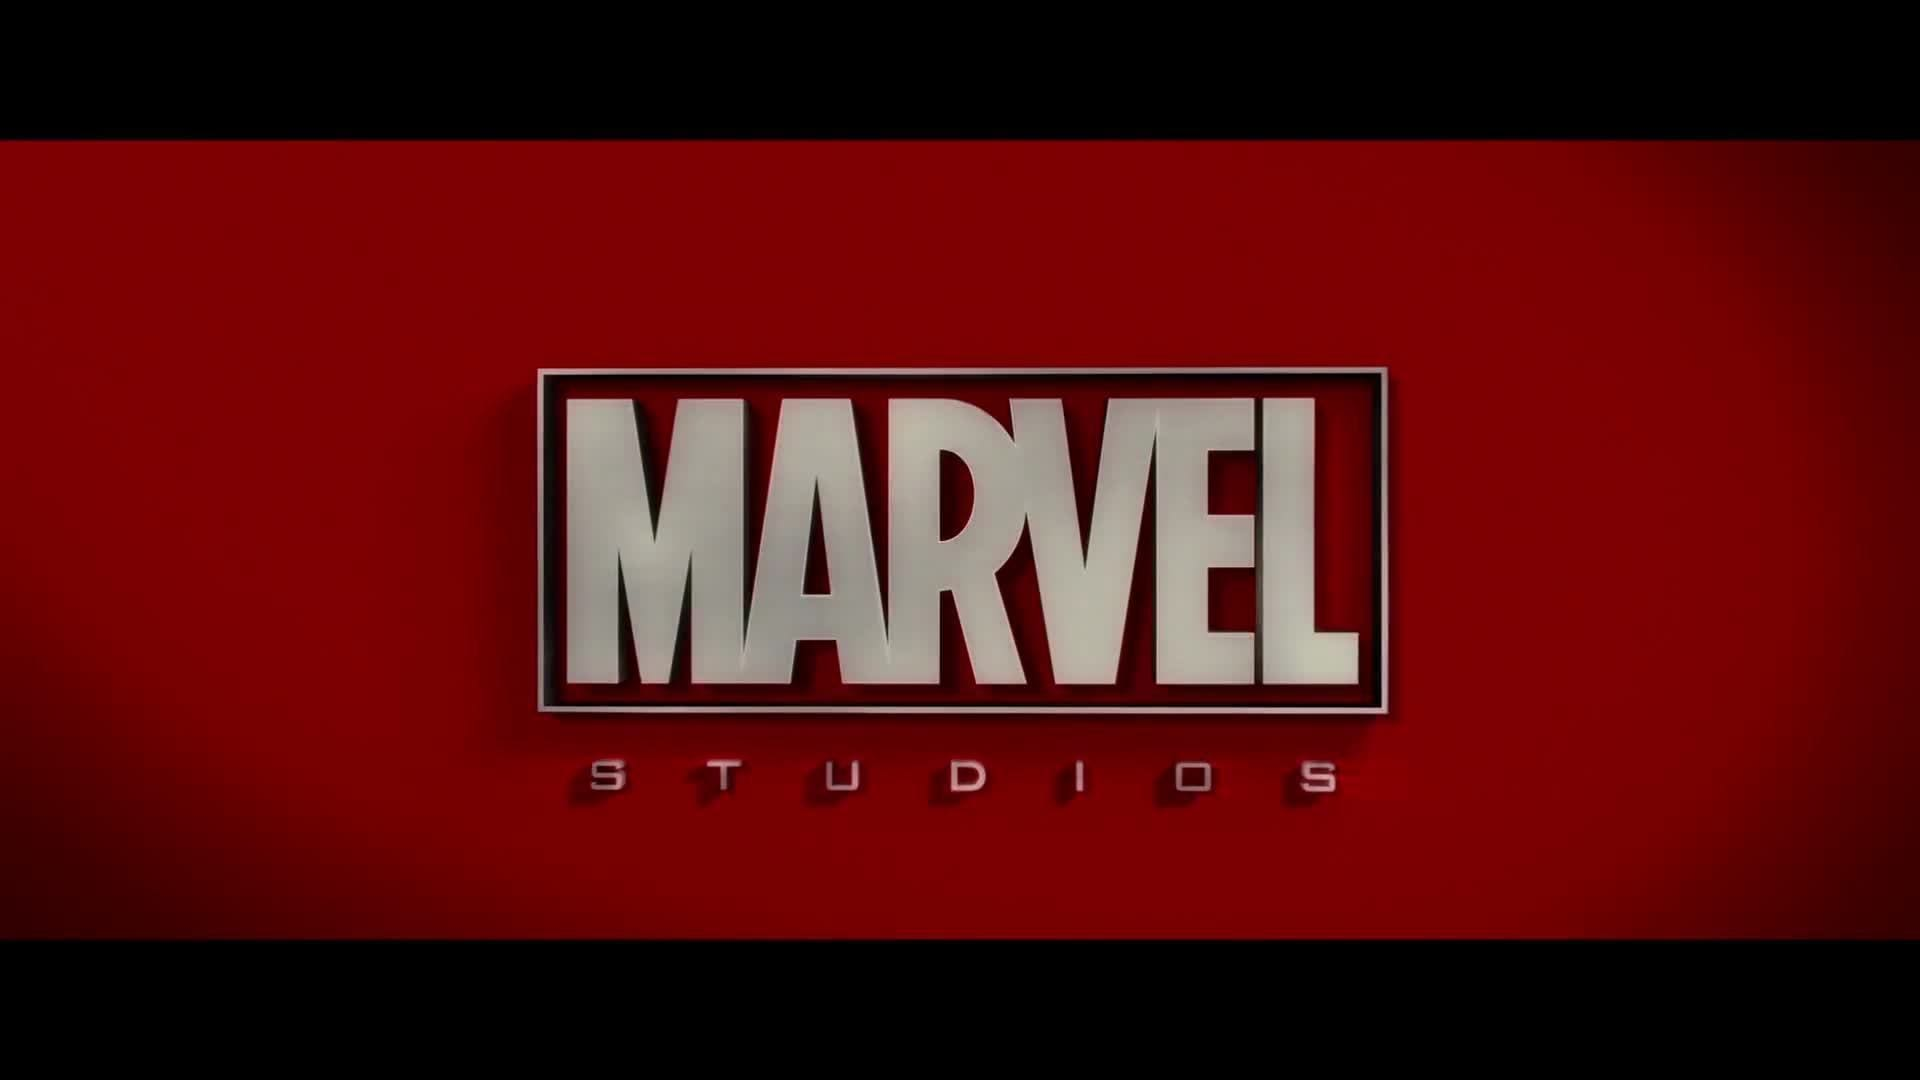 Captain America: The Winter Soldier - Blu-ray and Digital HD Trailer